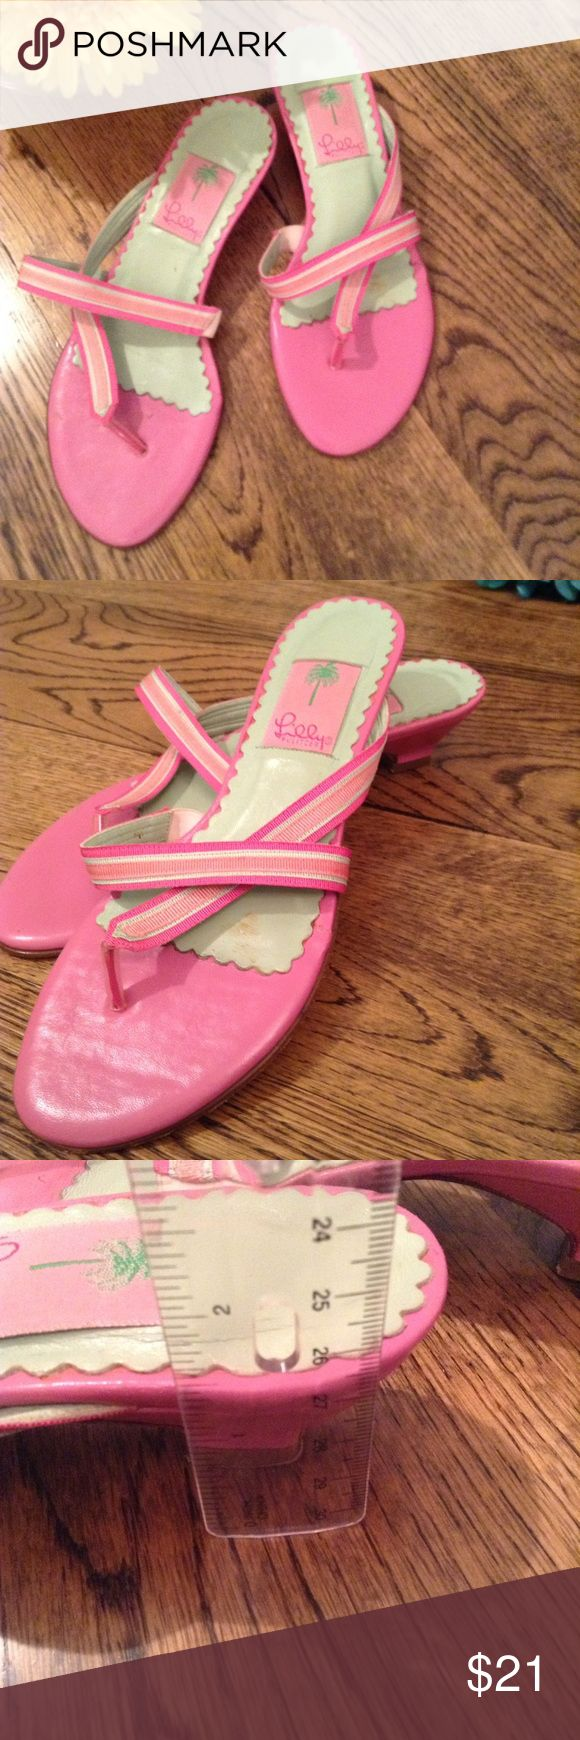 Lilly Pulitzer pink and green sandals The ultimate preppy color combo in go to vacation sandals by Lilly Pulitzer. Lilly Pulitzer Shoes Sandals